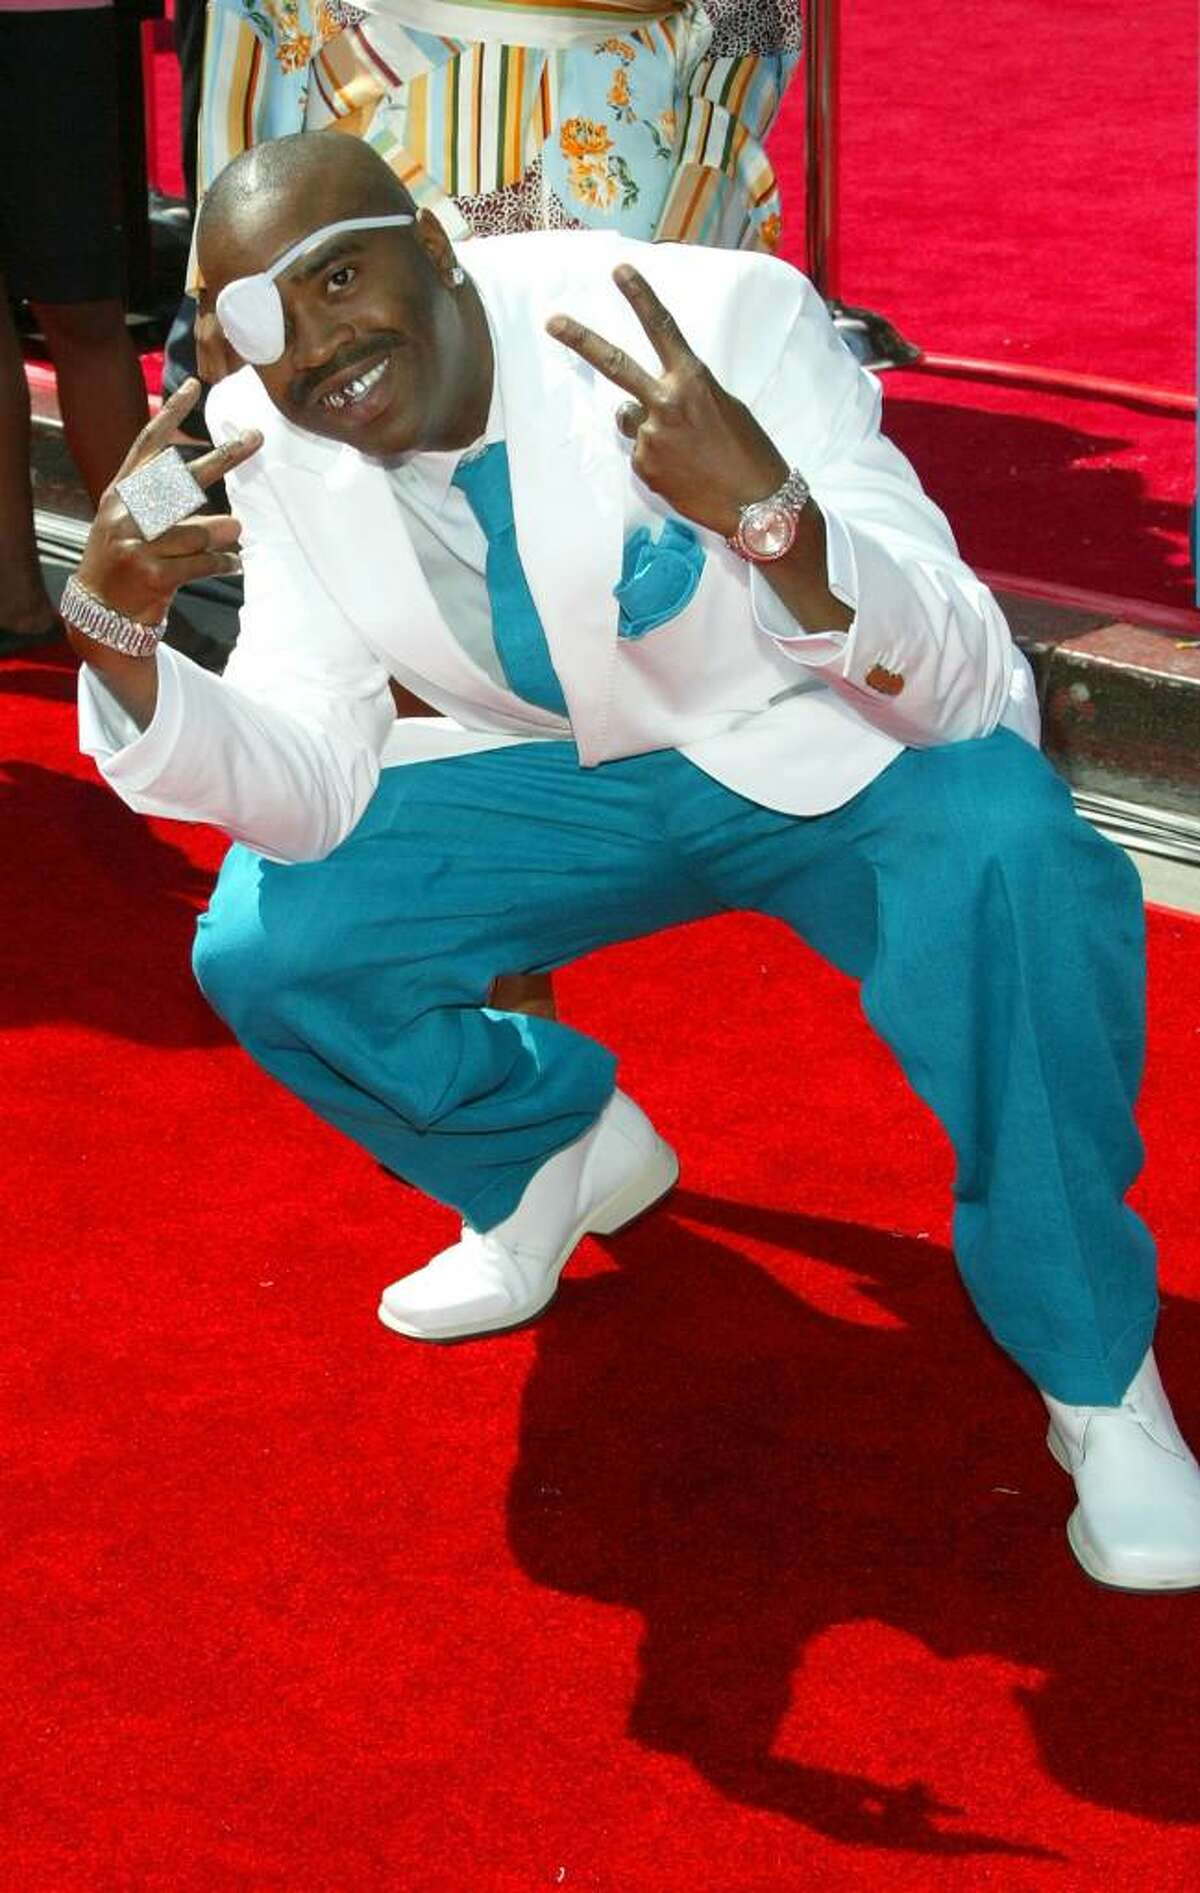 HOLLYWOOD, JUNE 28: arrives at the BET Awards 05 at the Kodak Theatre on June 28, 2005 in Hollywood, California. (Photo by Frederick M. Brown/Getty Images)